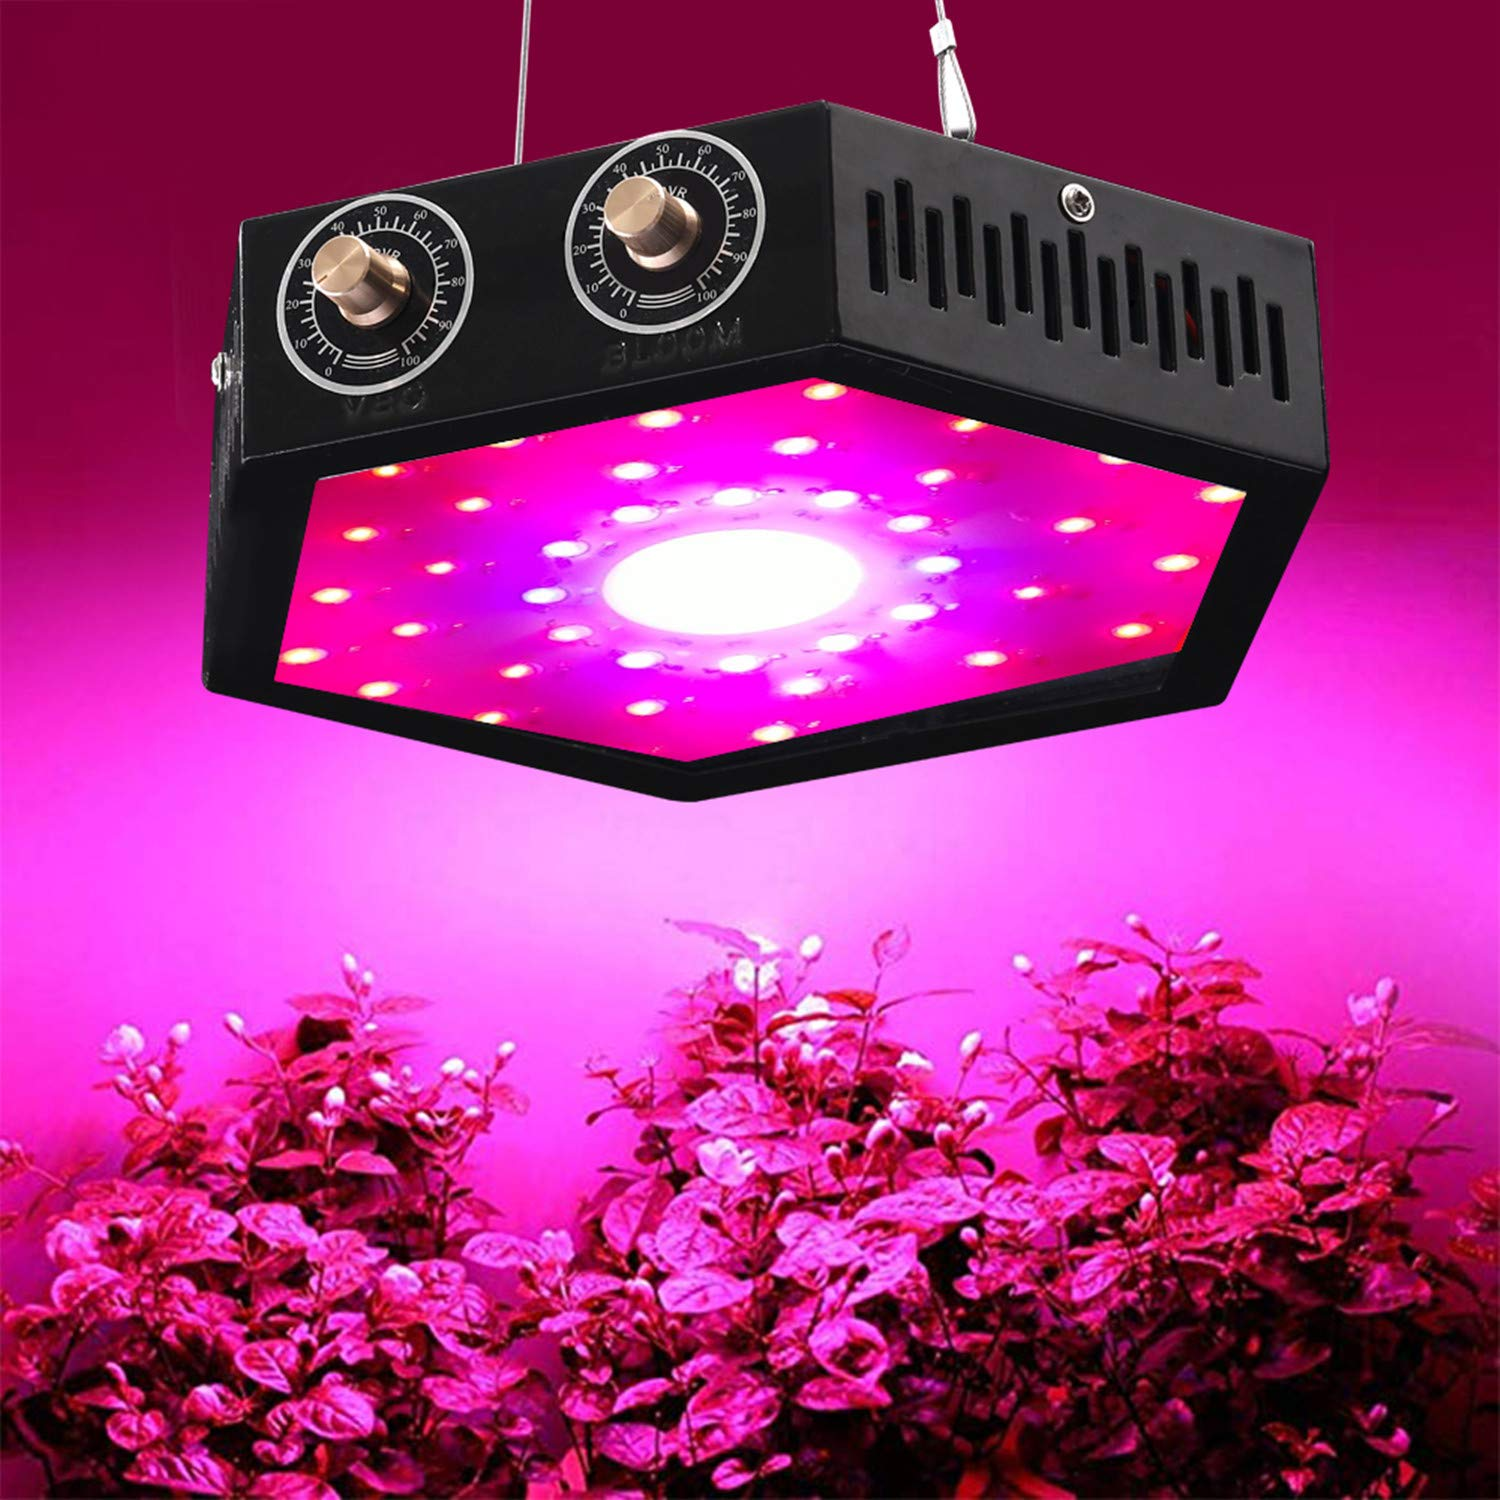 1000W COB LED Grow Light for Indoor Plant, Adjustable Full Spectrum Plant Light Growing Lamps with Veg and Bloom for Basement Planting. by EONPOW (Image #1)